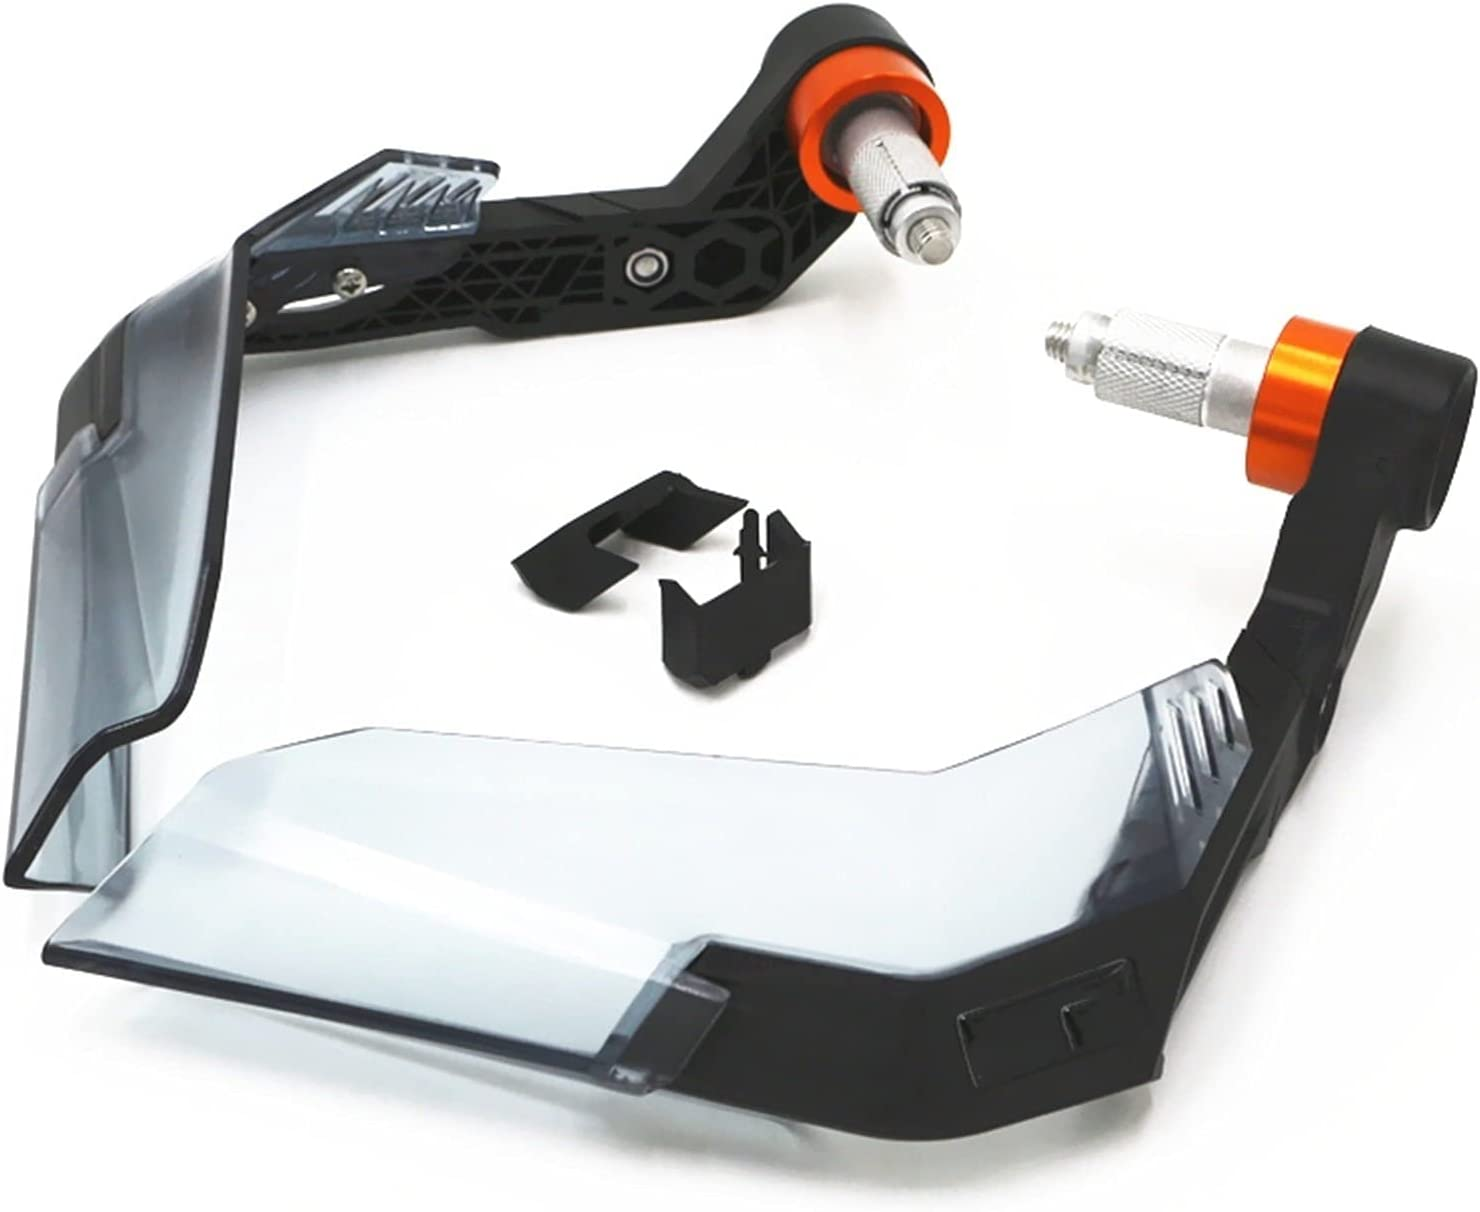 Easy-to-use Tokyoo Universal Motorcycle Hand Z1000SX Guards Z1000 Kawasaki Recommendation